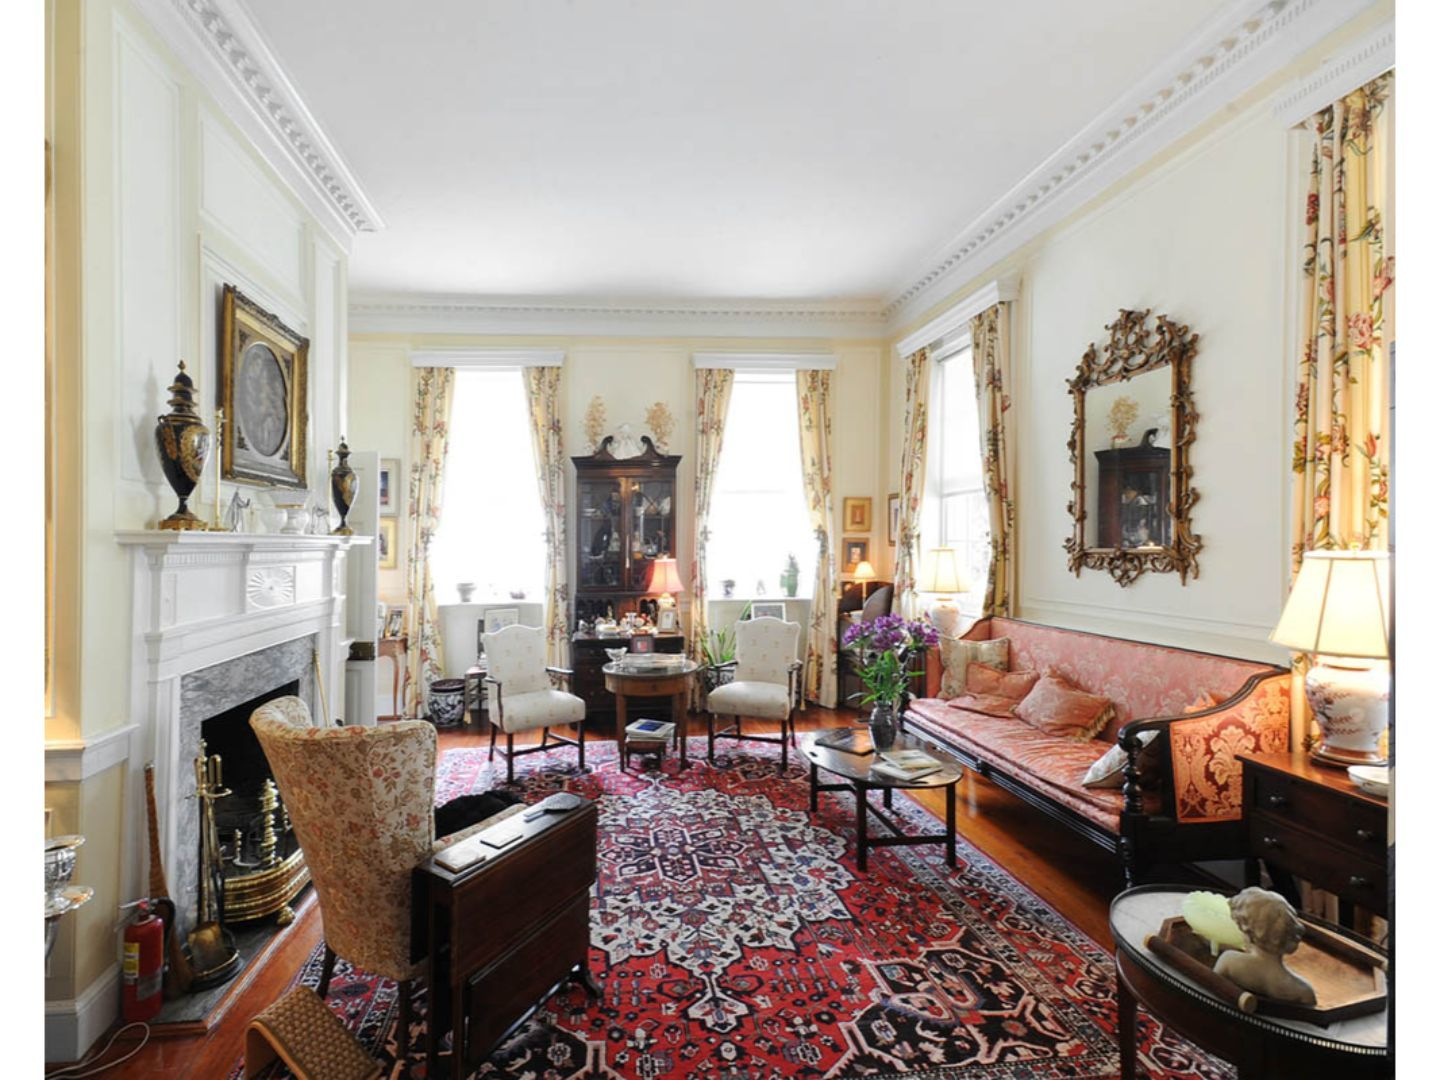 A living room filled with furniture and a fire place at 15 Church Street Bed & Breakfast.